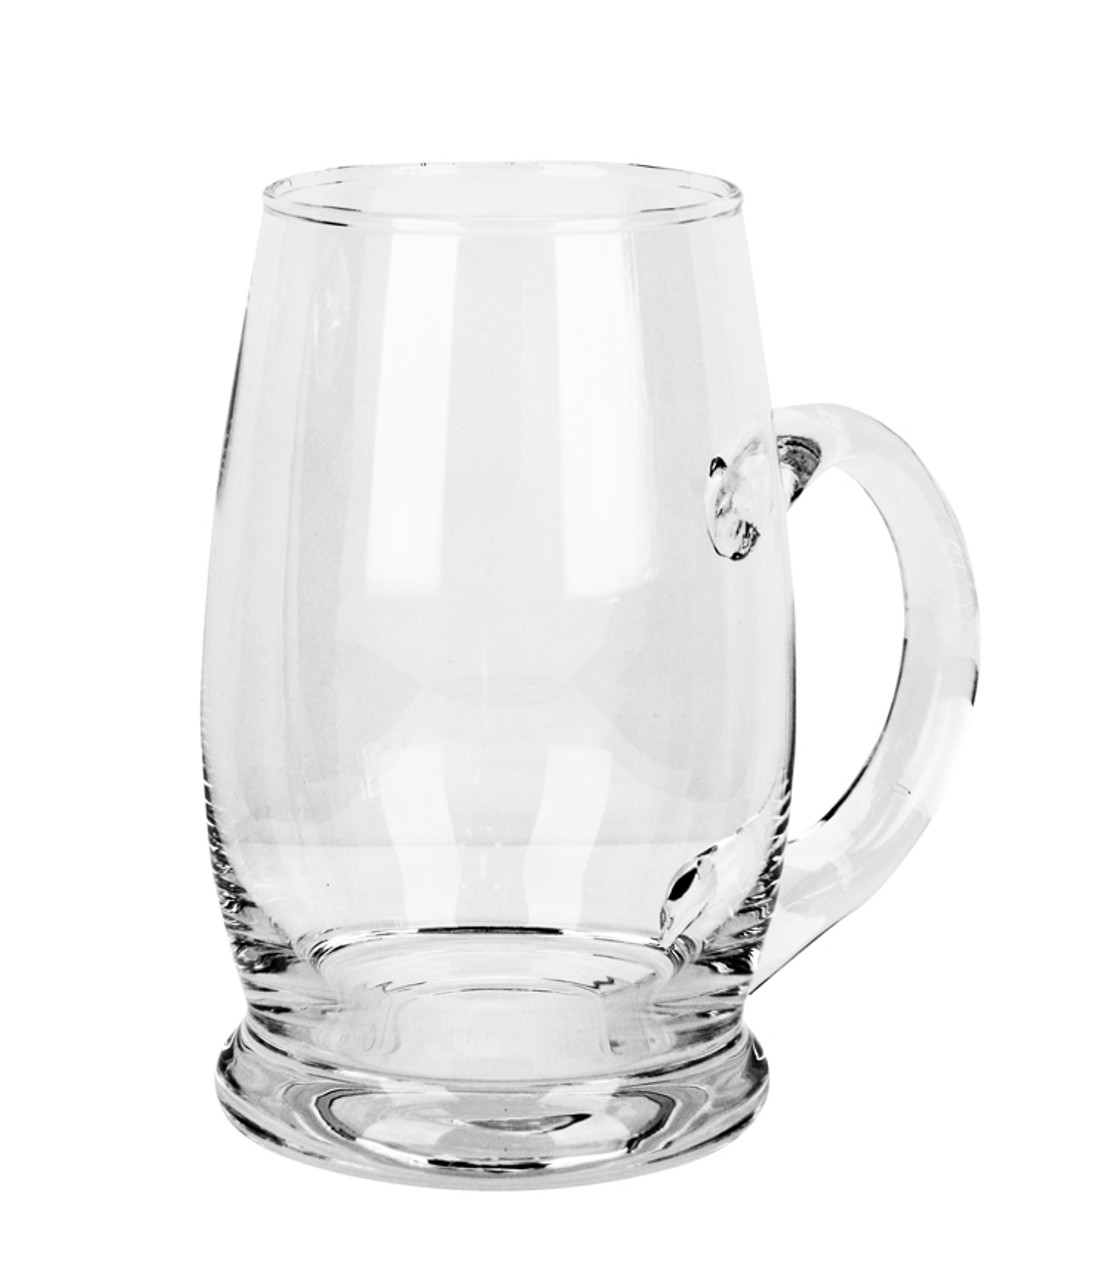 Personalized Authentic German 0.5 Liter Riva Beer Mug